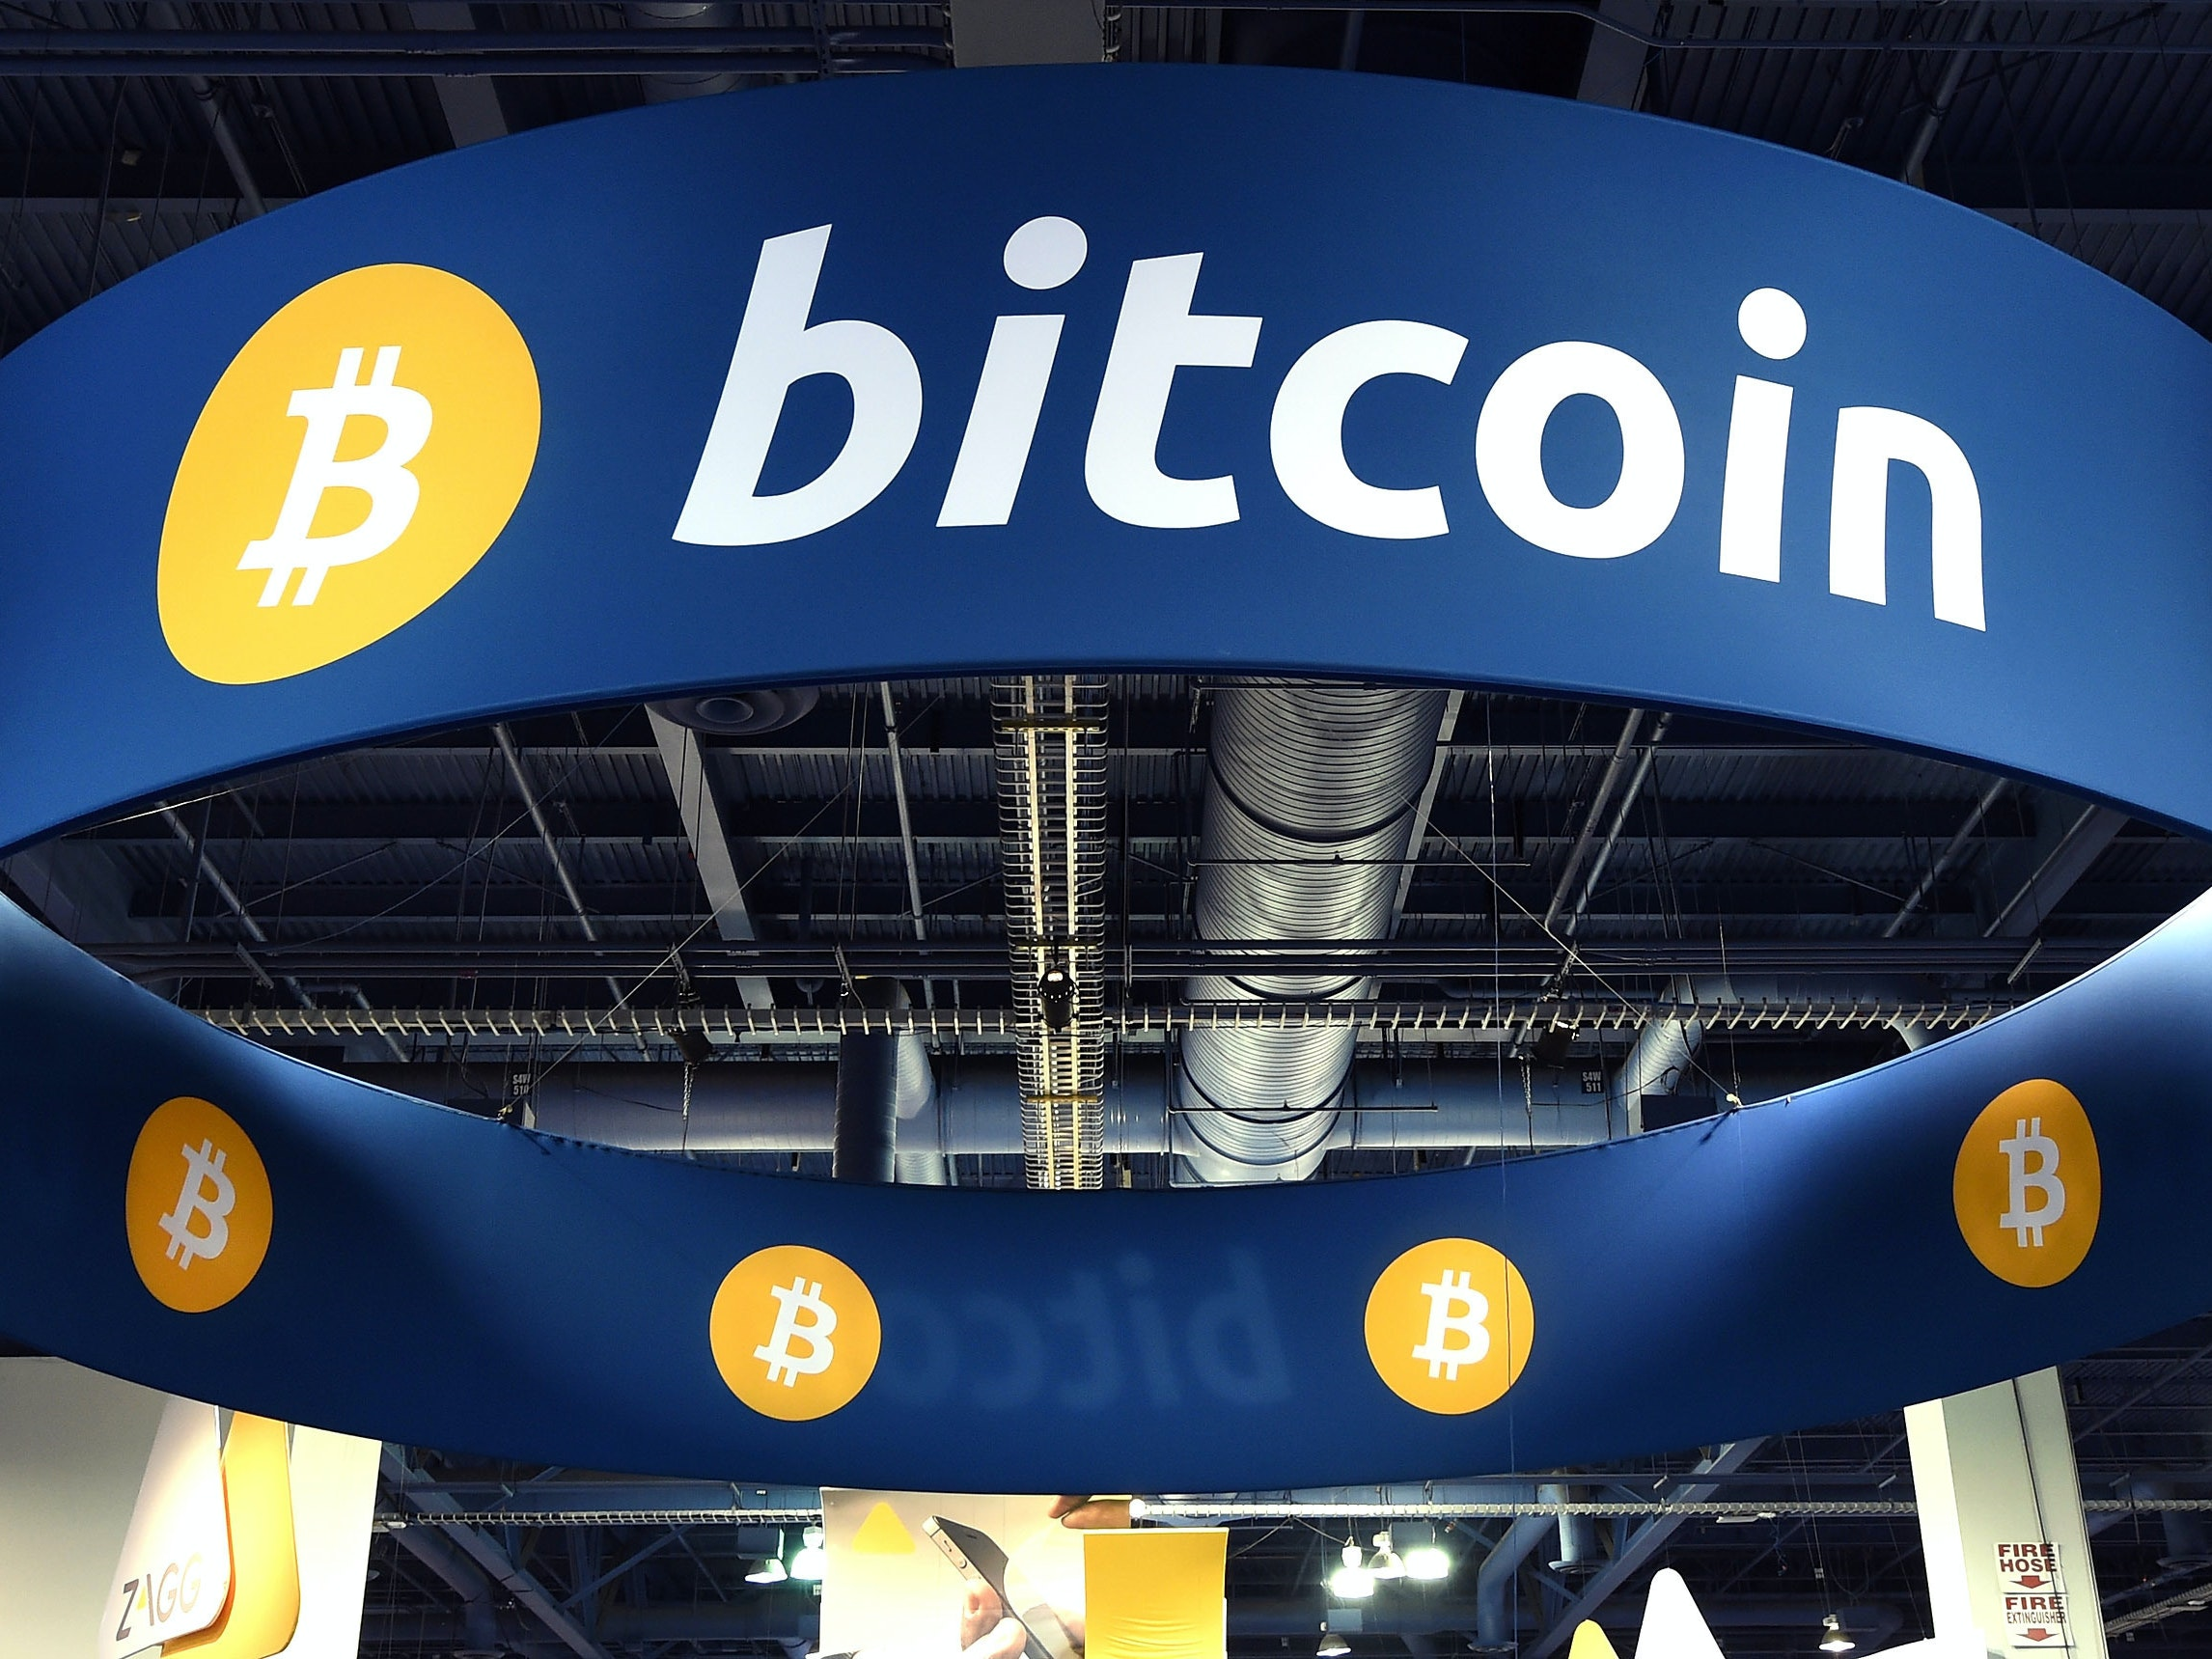 LAS VEGAS, NV - JANUARY 08:  A general view of the Bitcoin booth at the 2015 International CES at the Las Vegas Convention Center on January 8, 2015 in Las Vegas, Nevada. CES, the world's largest annual consumer technology trade show, runs through January 9 and is expected to feature 3,600 exhibitors showing off their latest products and services to about 150,000 attendees.  (Photo by Ethan Miller/Getty Images)